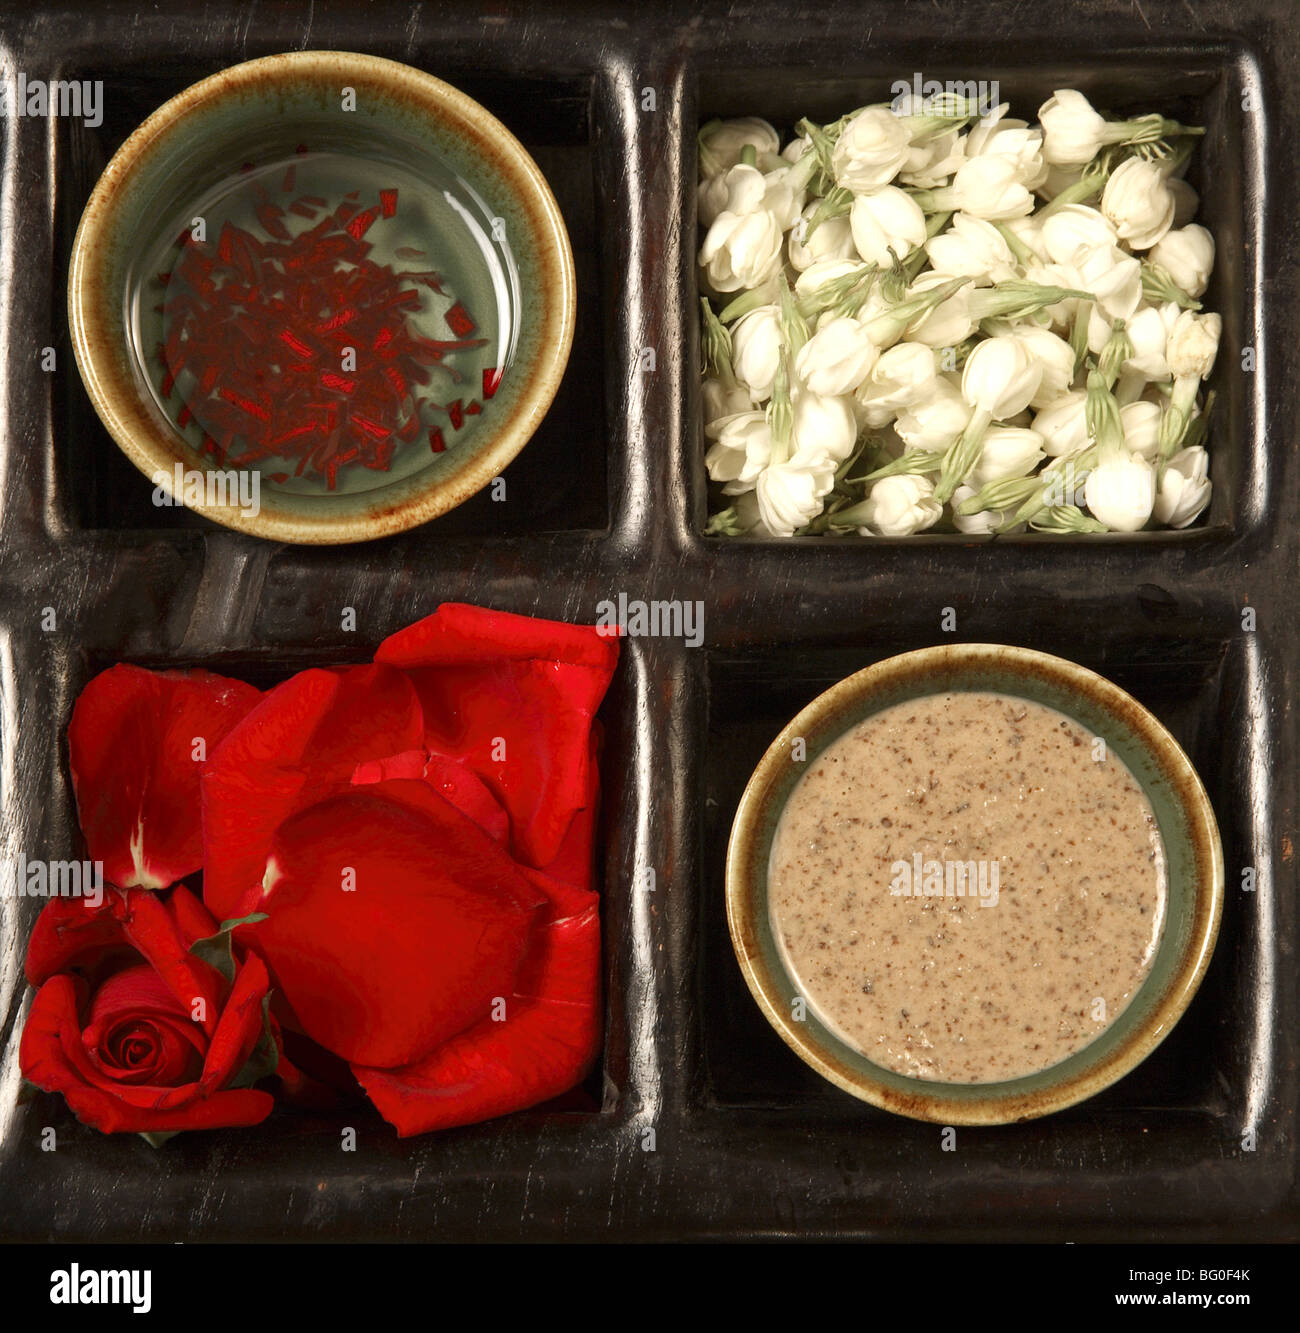 Ingredients for rose and jasmine scrub - Stock Image